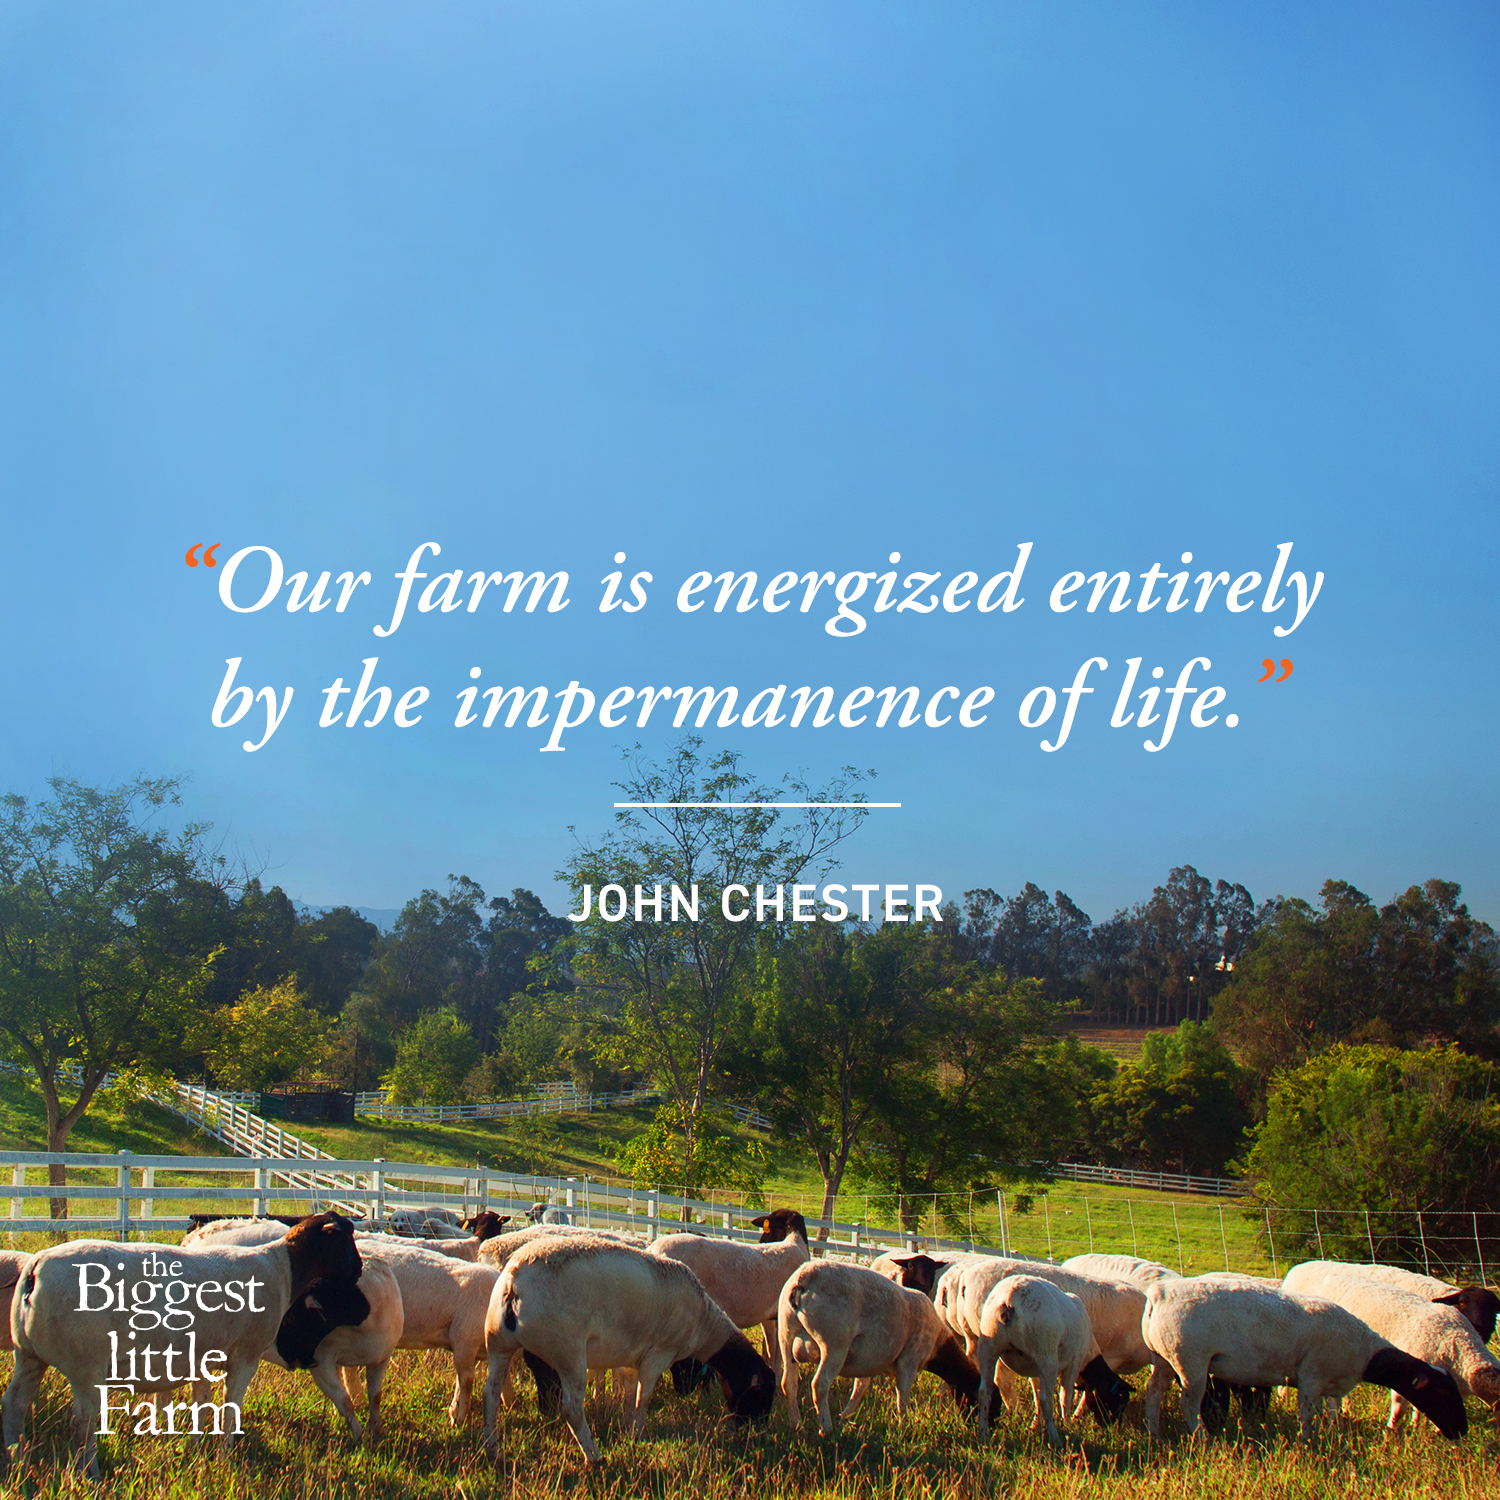 Farming, Filming and Biodiversity: An Interview with John Chester